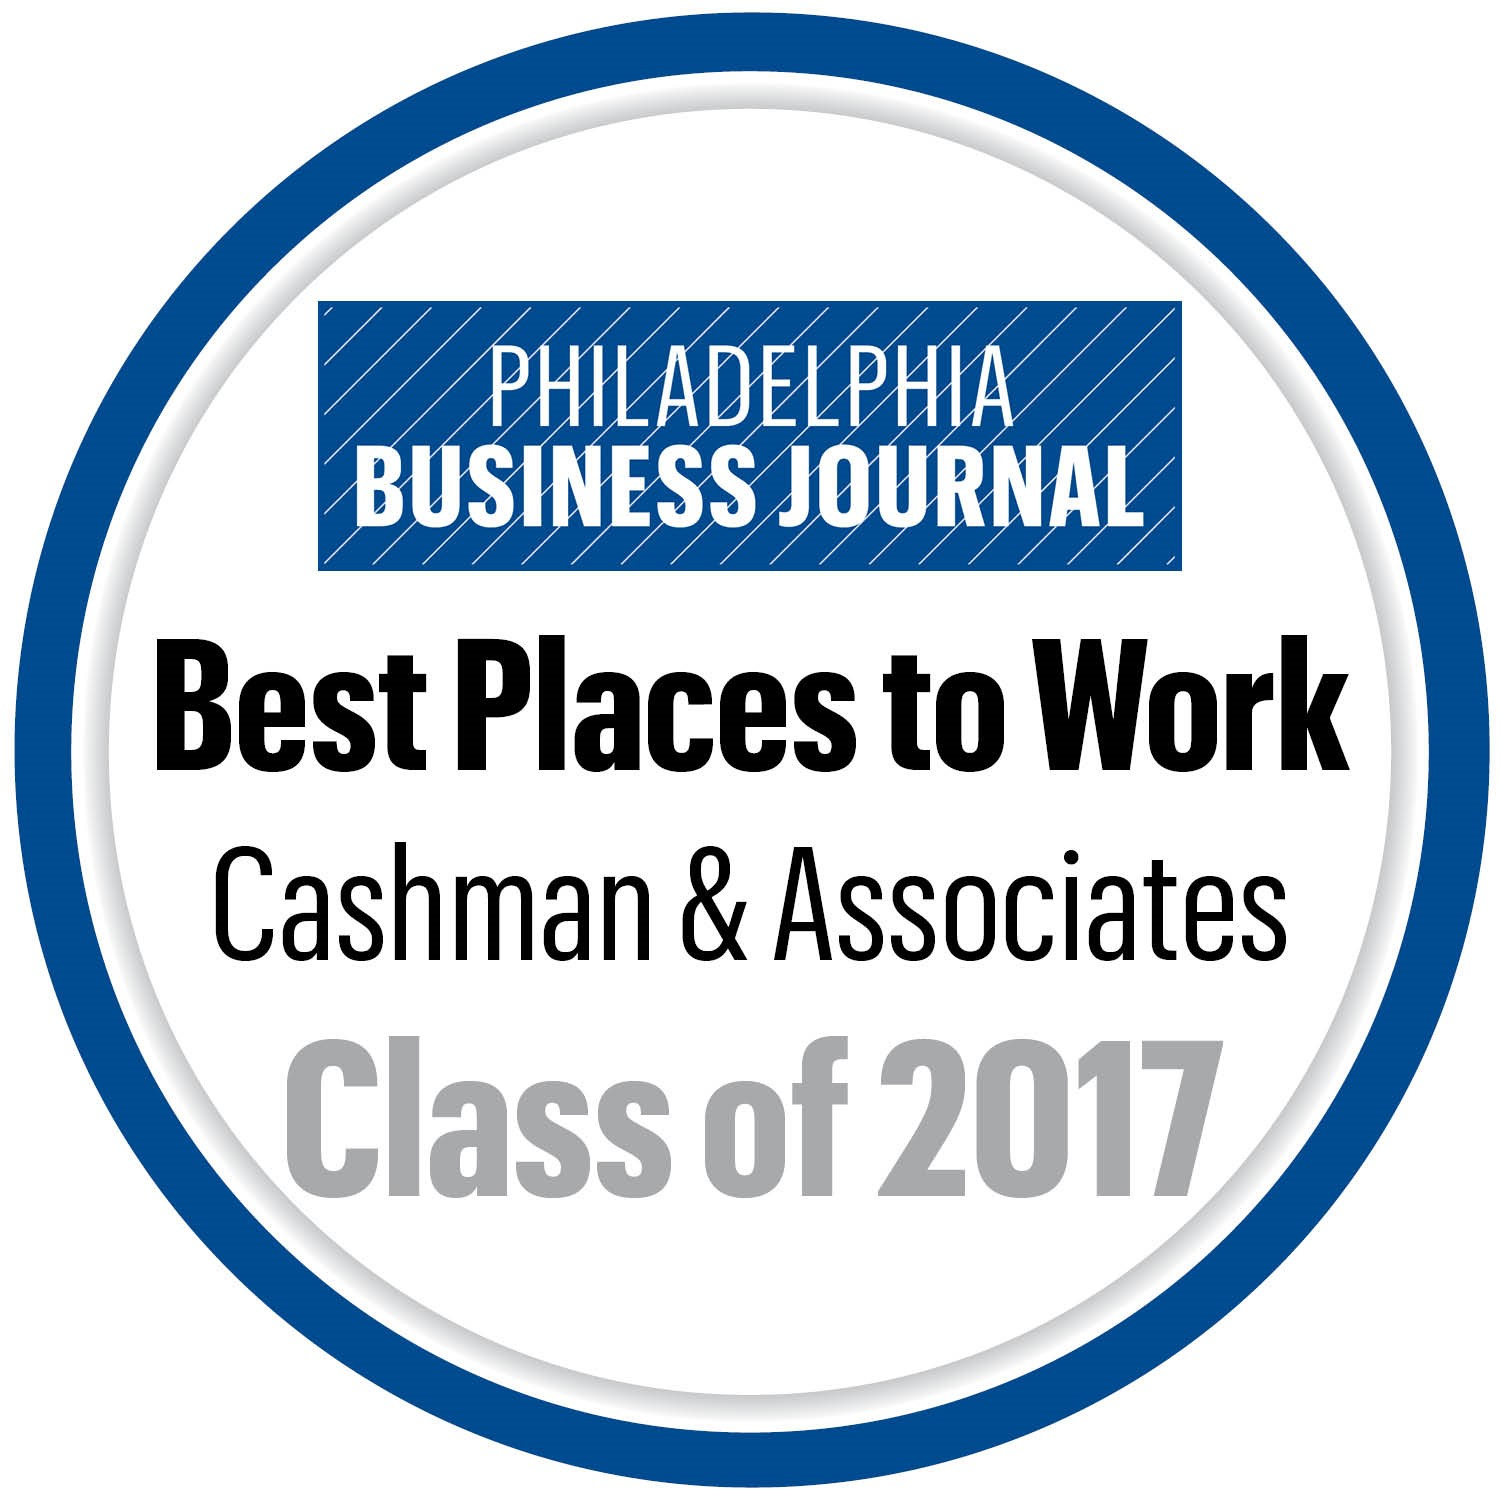 Philadelphia Business Journal Best Places to Work 2017